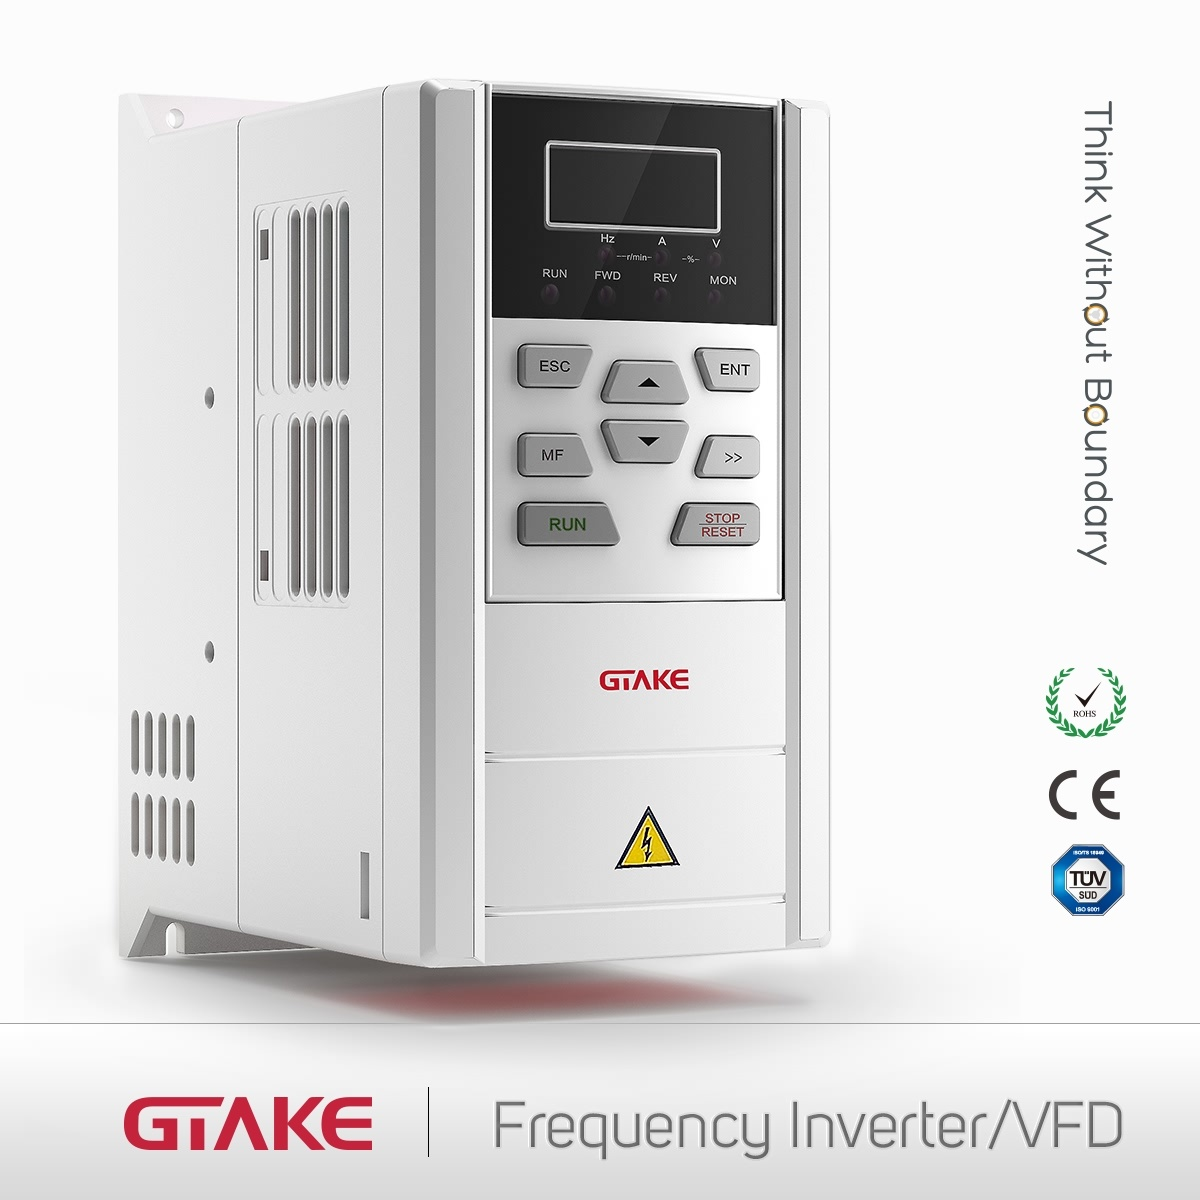 China Top Brand Frequency Inverter for General Purpose Applications pictures & photos